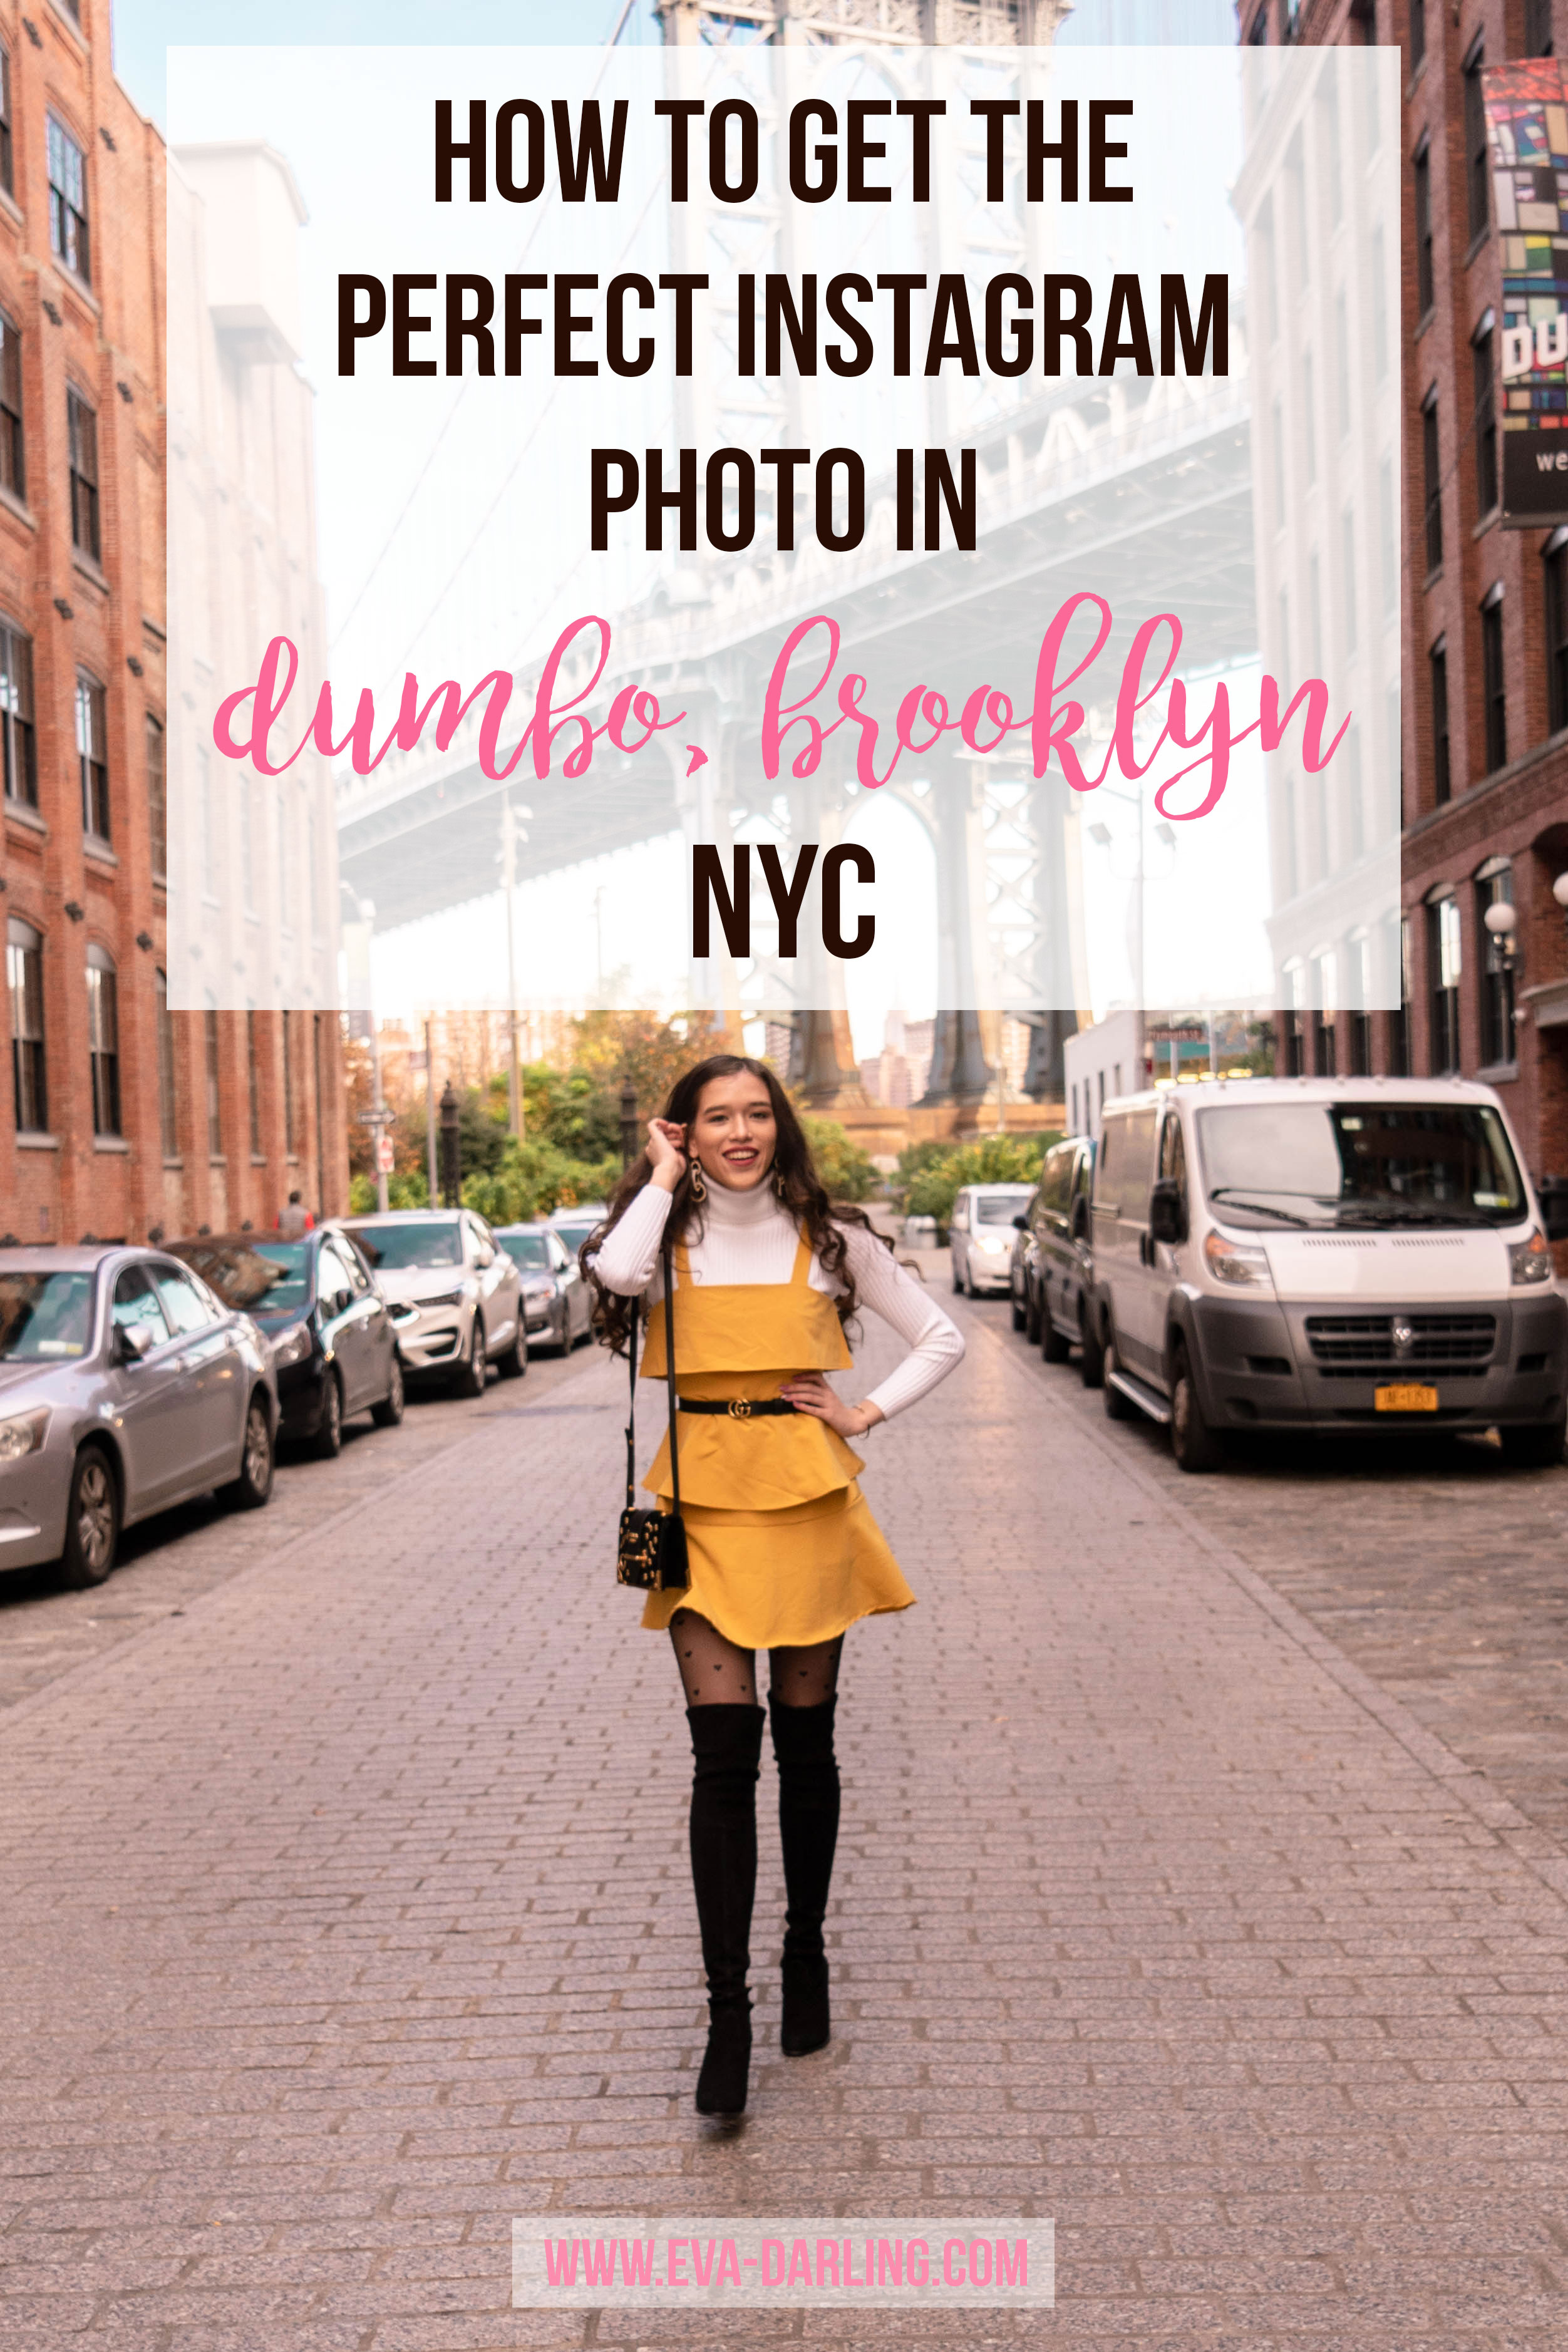 Popular NYC style and travel blogger Eva Phan stuart weitzman hiline over the knee OTK boots in black yellow ruffle tiered fit and flare dress white turtleneck sweater black heart tights gucci belt 1 inch prada astrology cahier handbag half asian VIetnamese girl trendy fall ootd outfit figure flattering teenage luxury college what to wear Lisi Lerch Emily Pearl Earrings